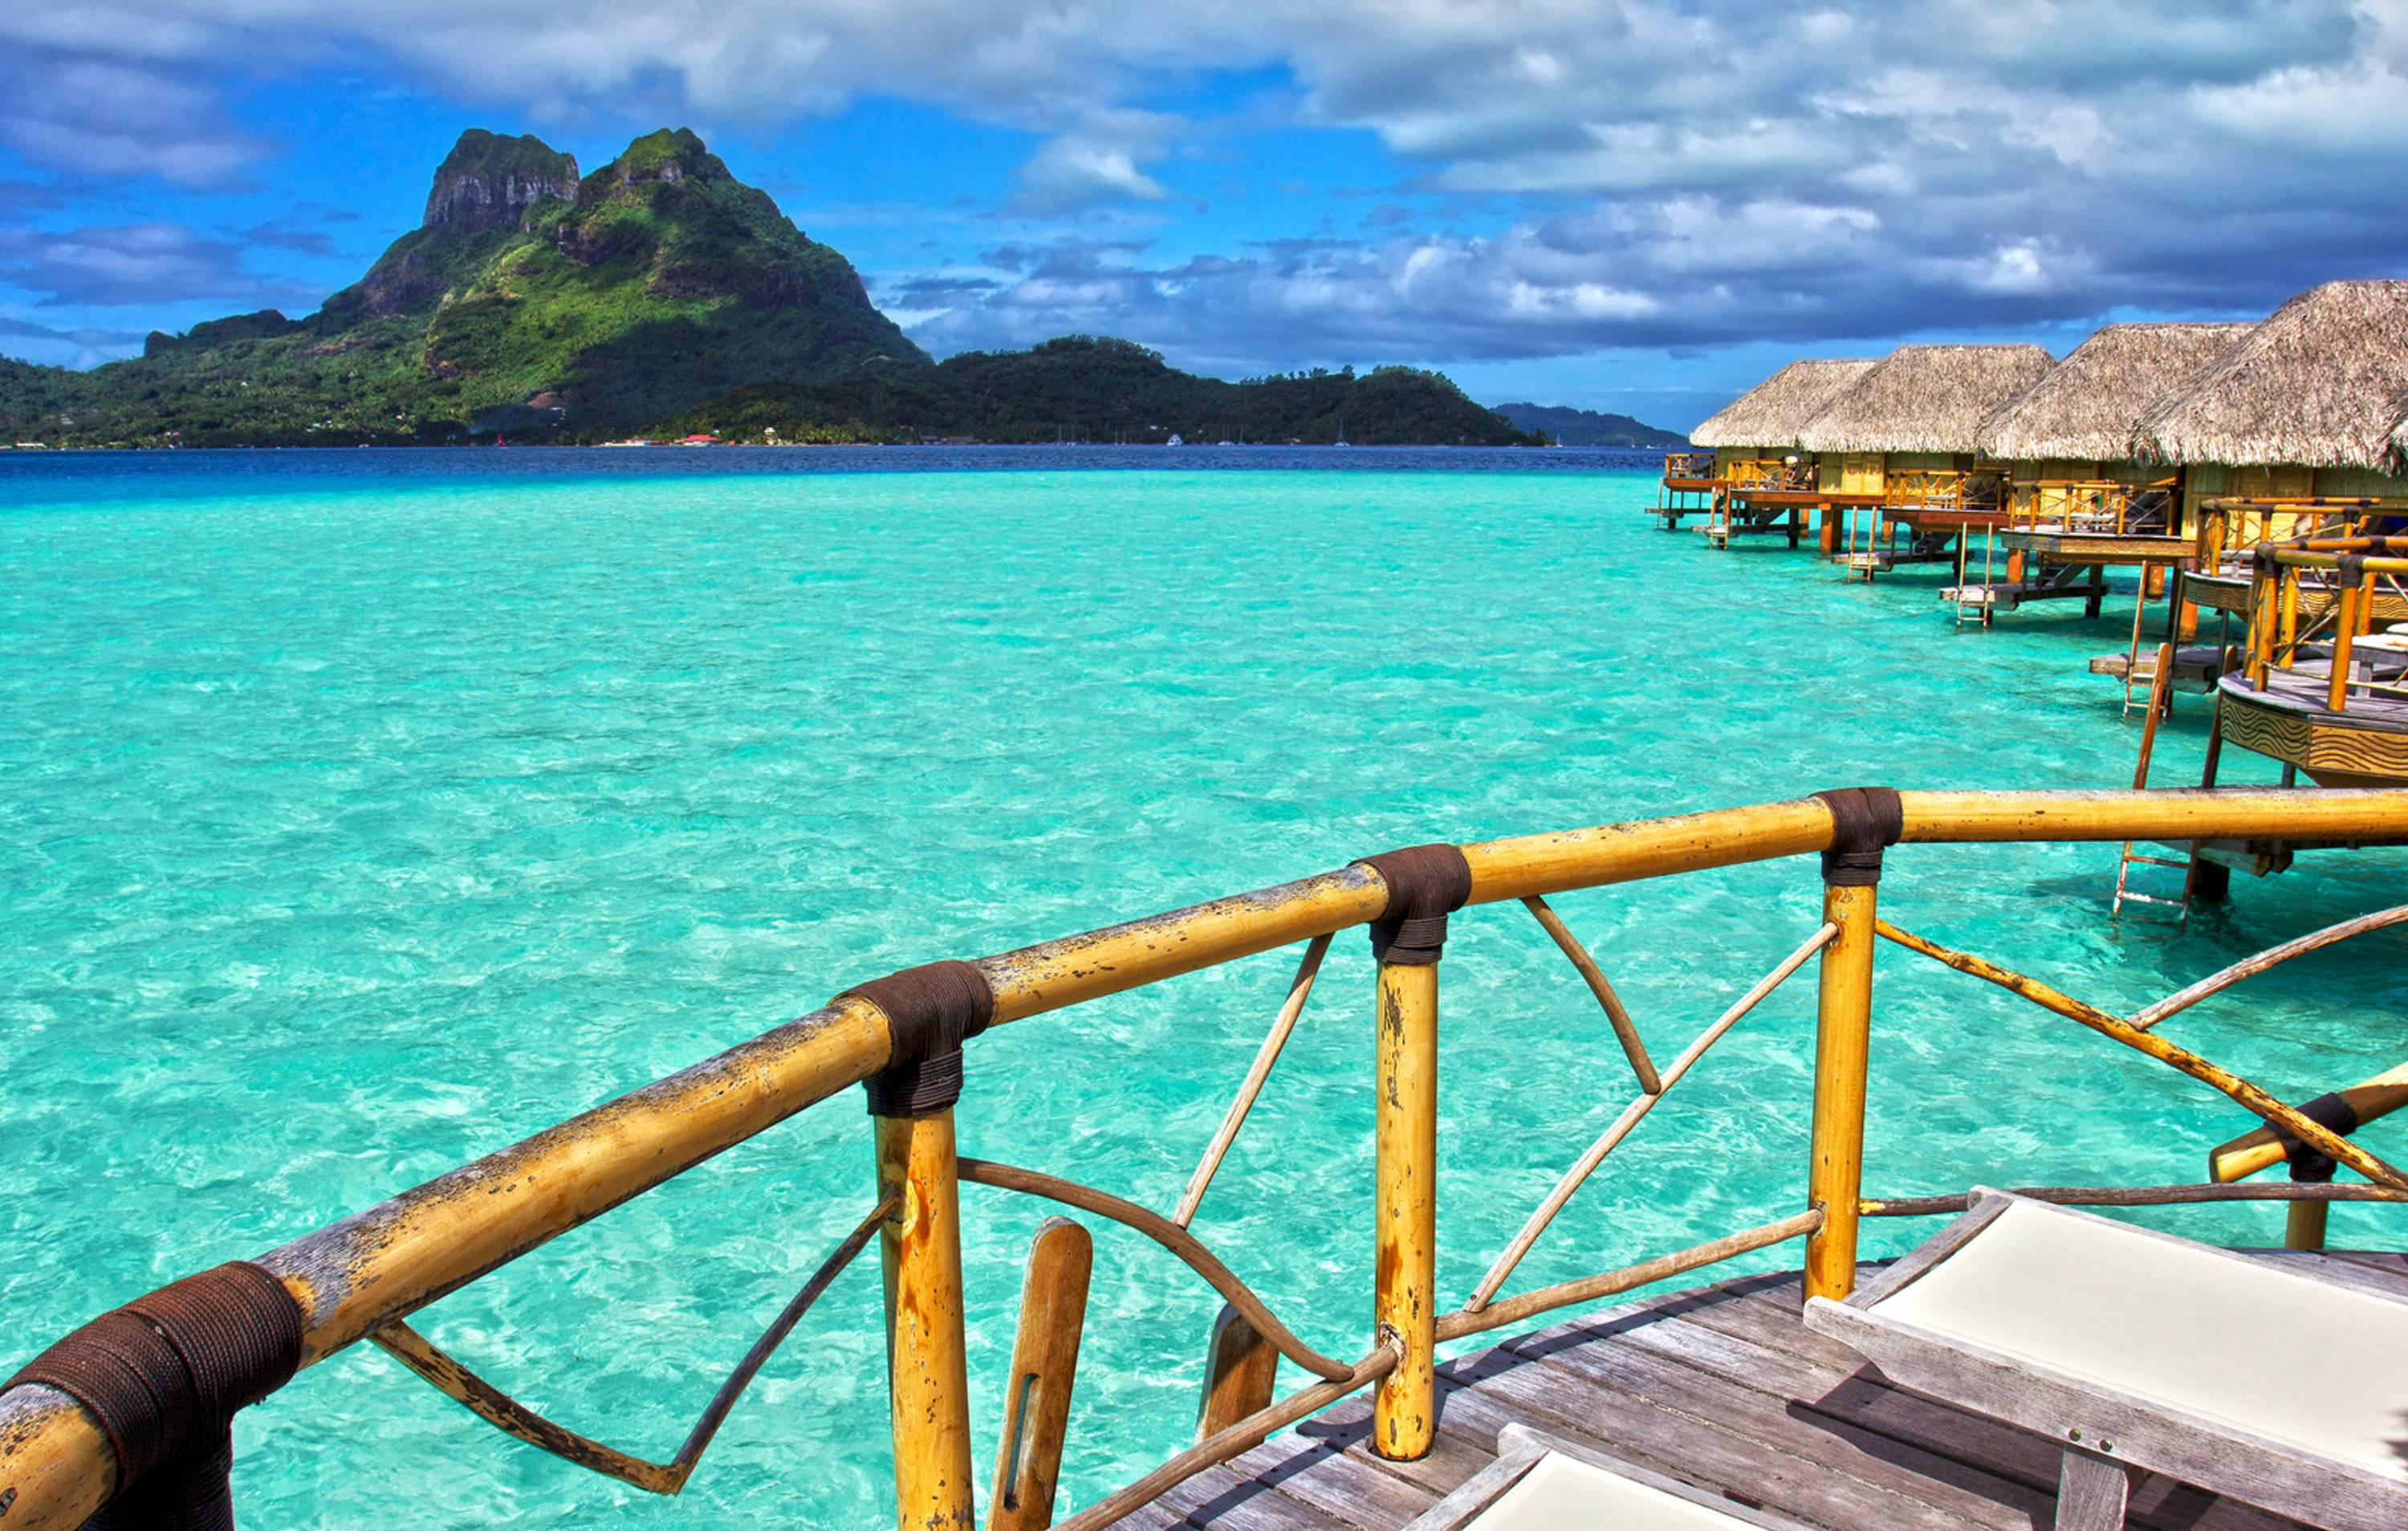 Bora bora step into paradise   160964   High Quality and Resolution 3000x1907